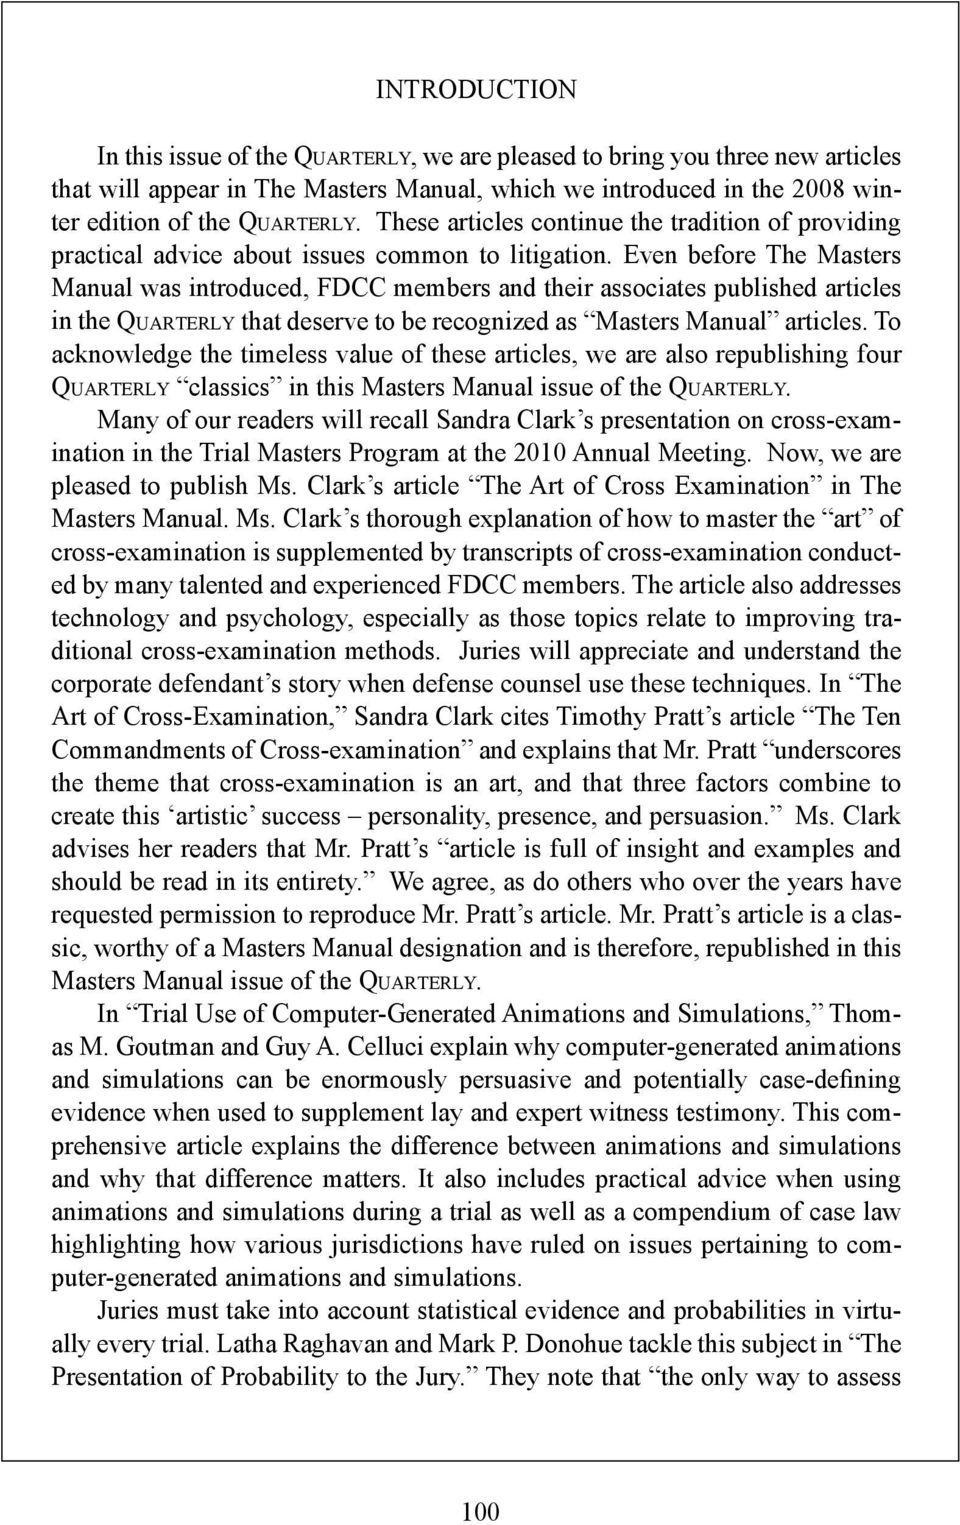 Even before The Masters Manual was introduced, FDCC members and their associates published articles in the Quarterly that deserve to be recognized as Masters Manual articles.